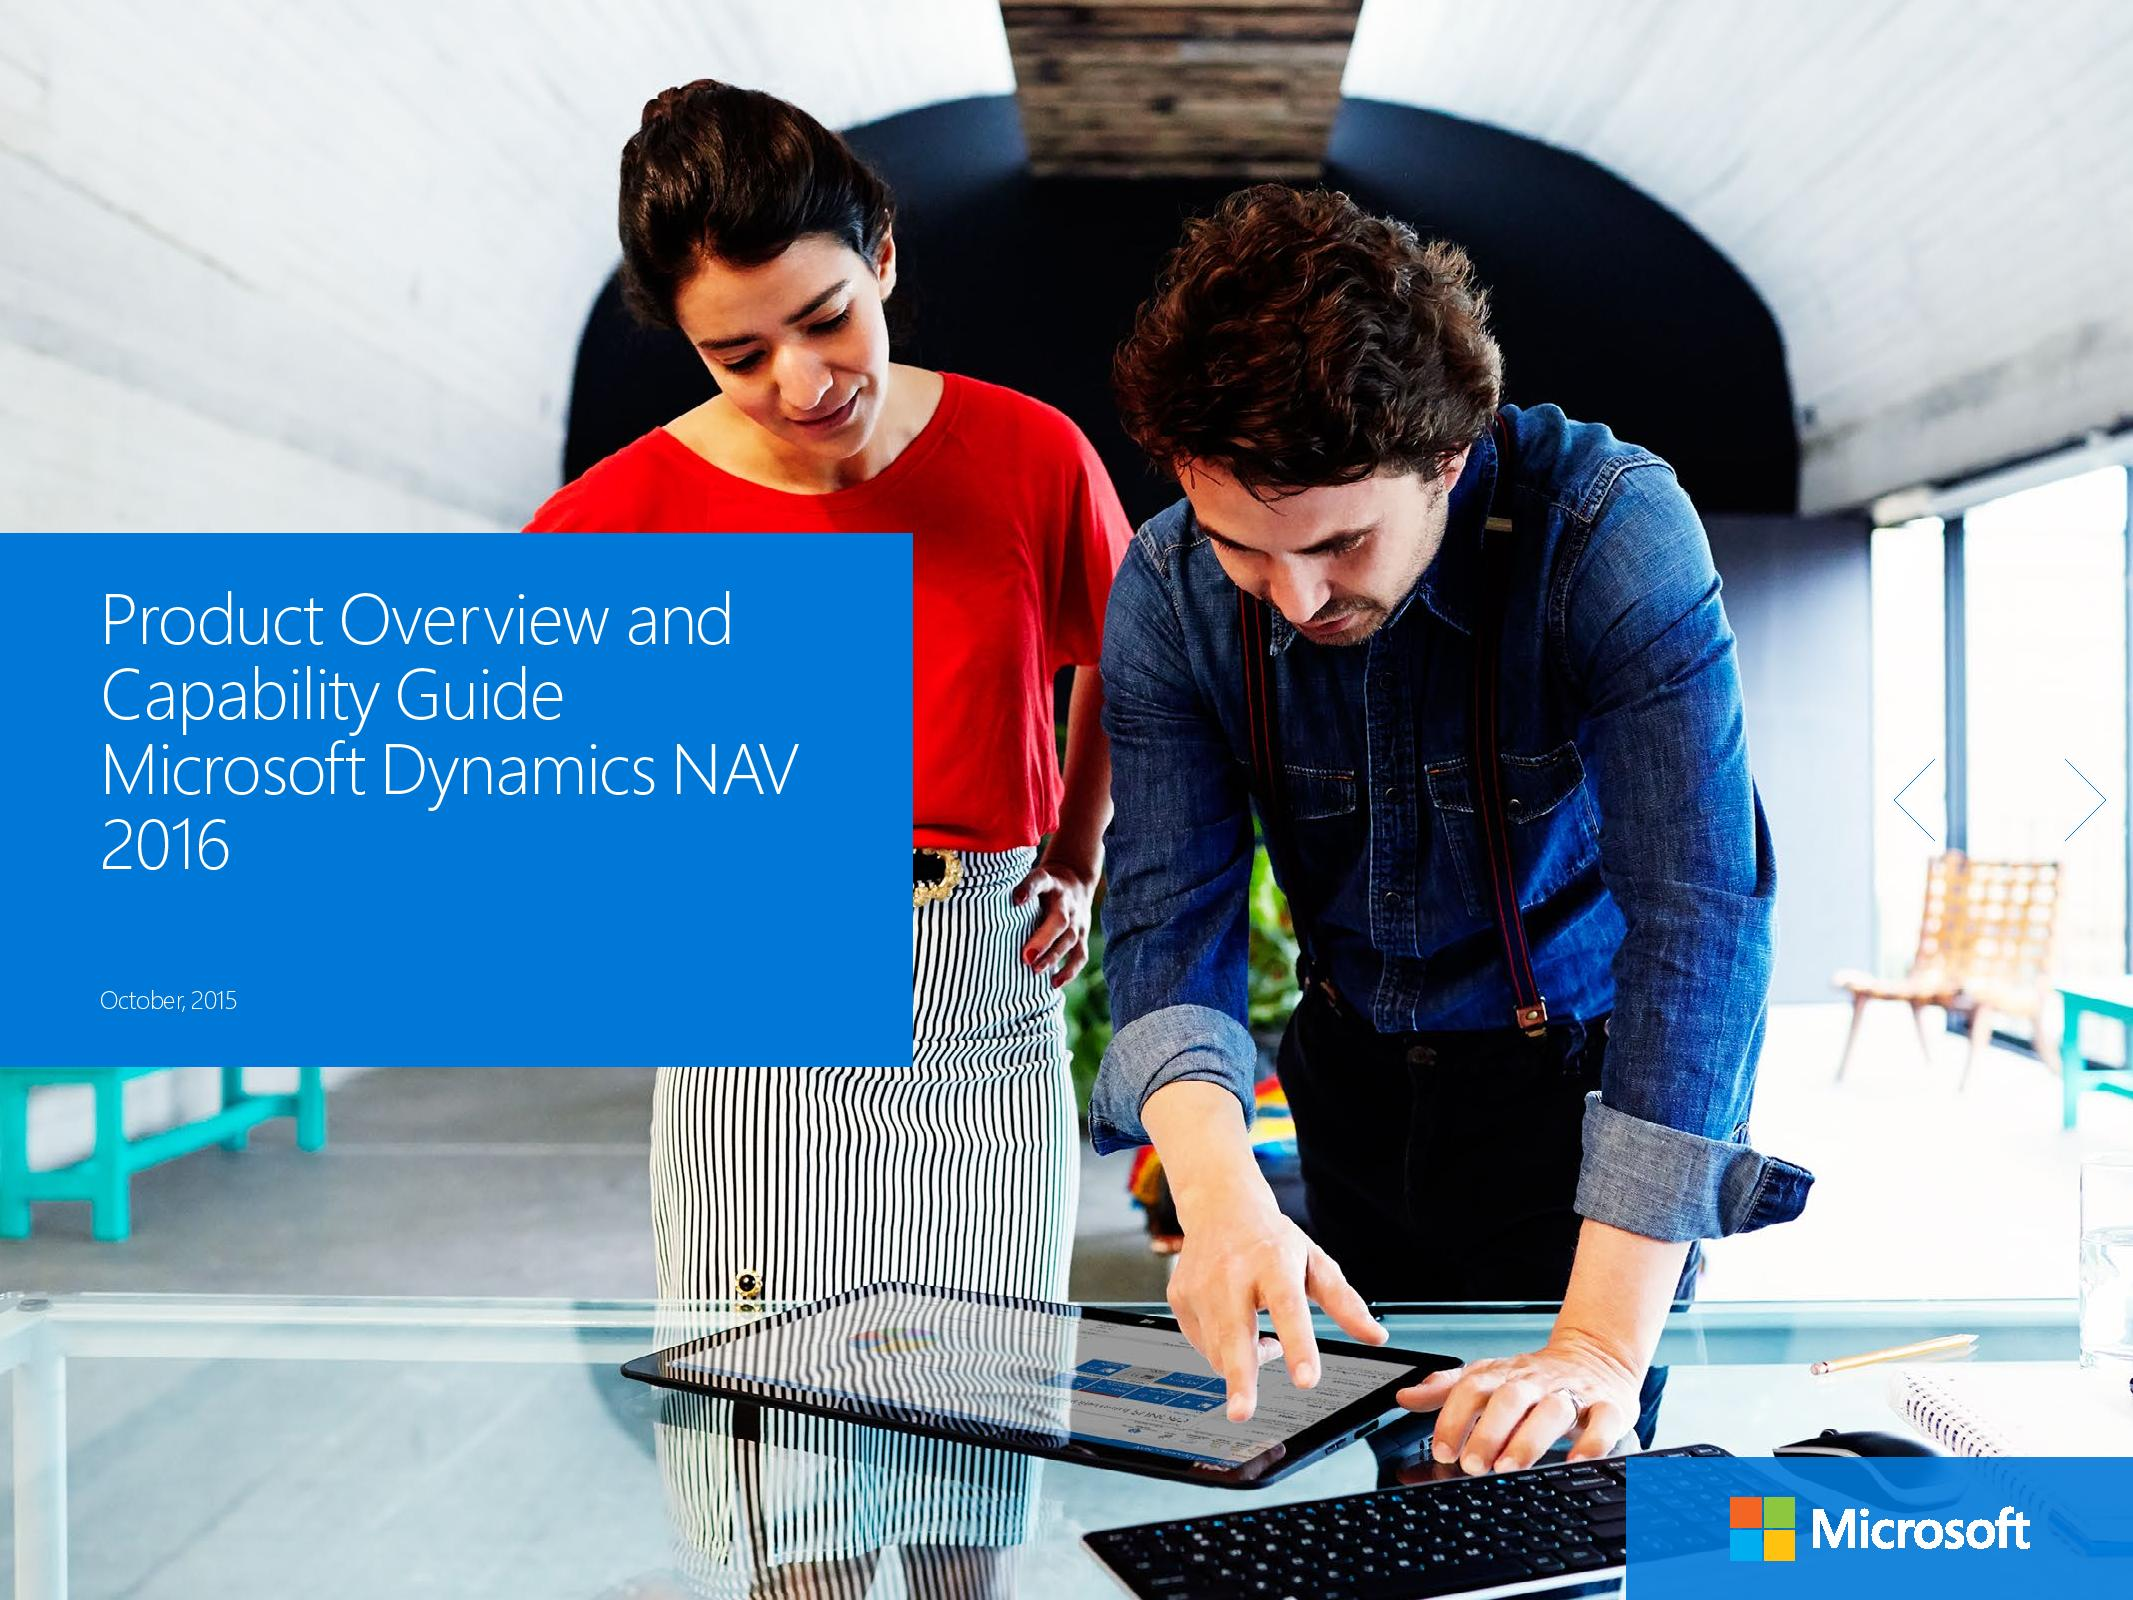 microsoftdynamicsnav2016_productoverview_and_capabilityguide-page-001